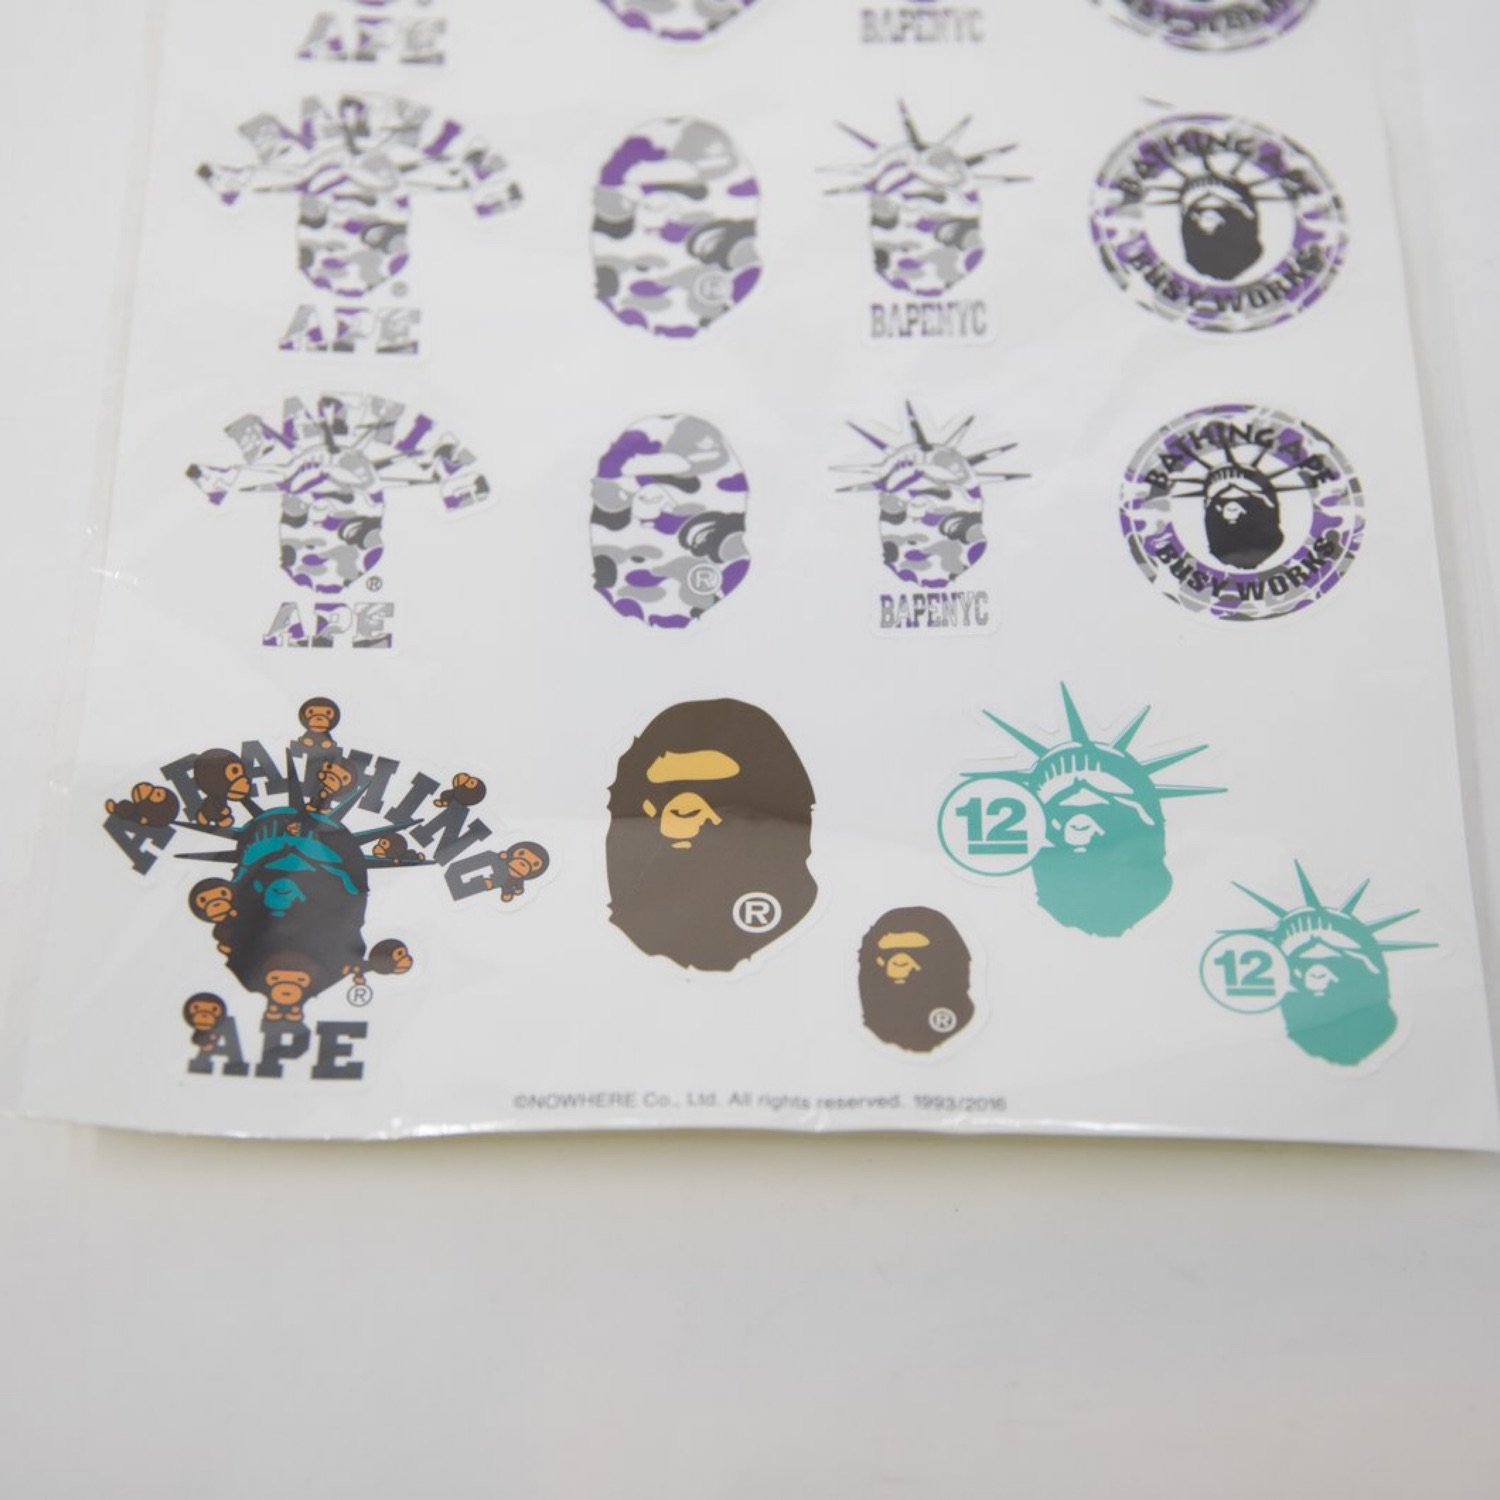 Bape Nyc Sticker Sheet (Mint)